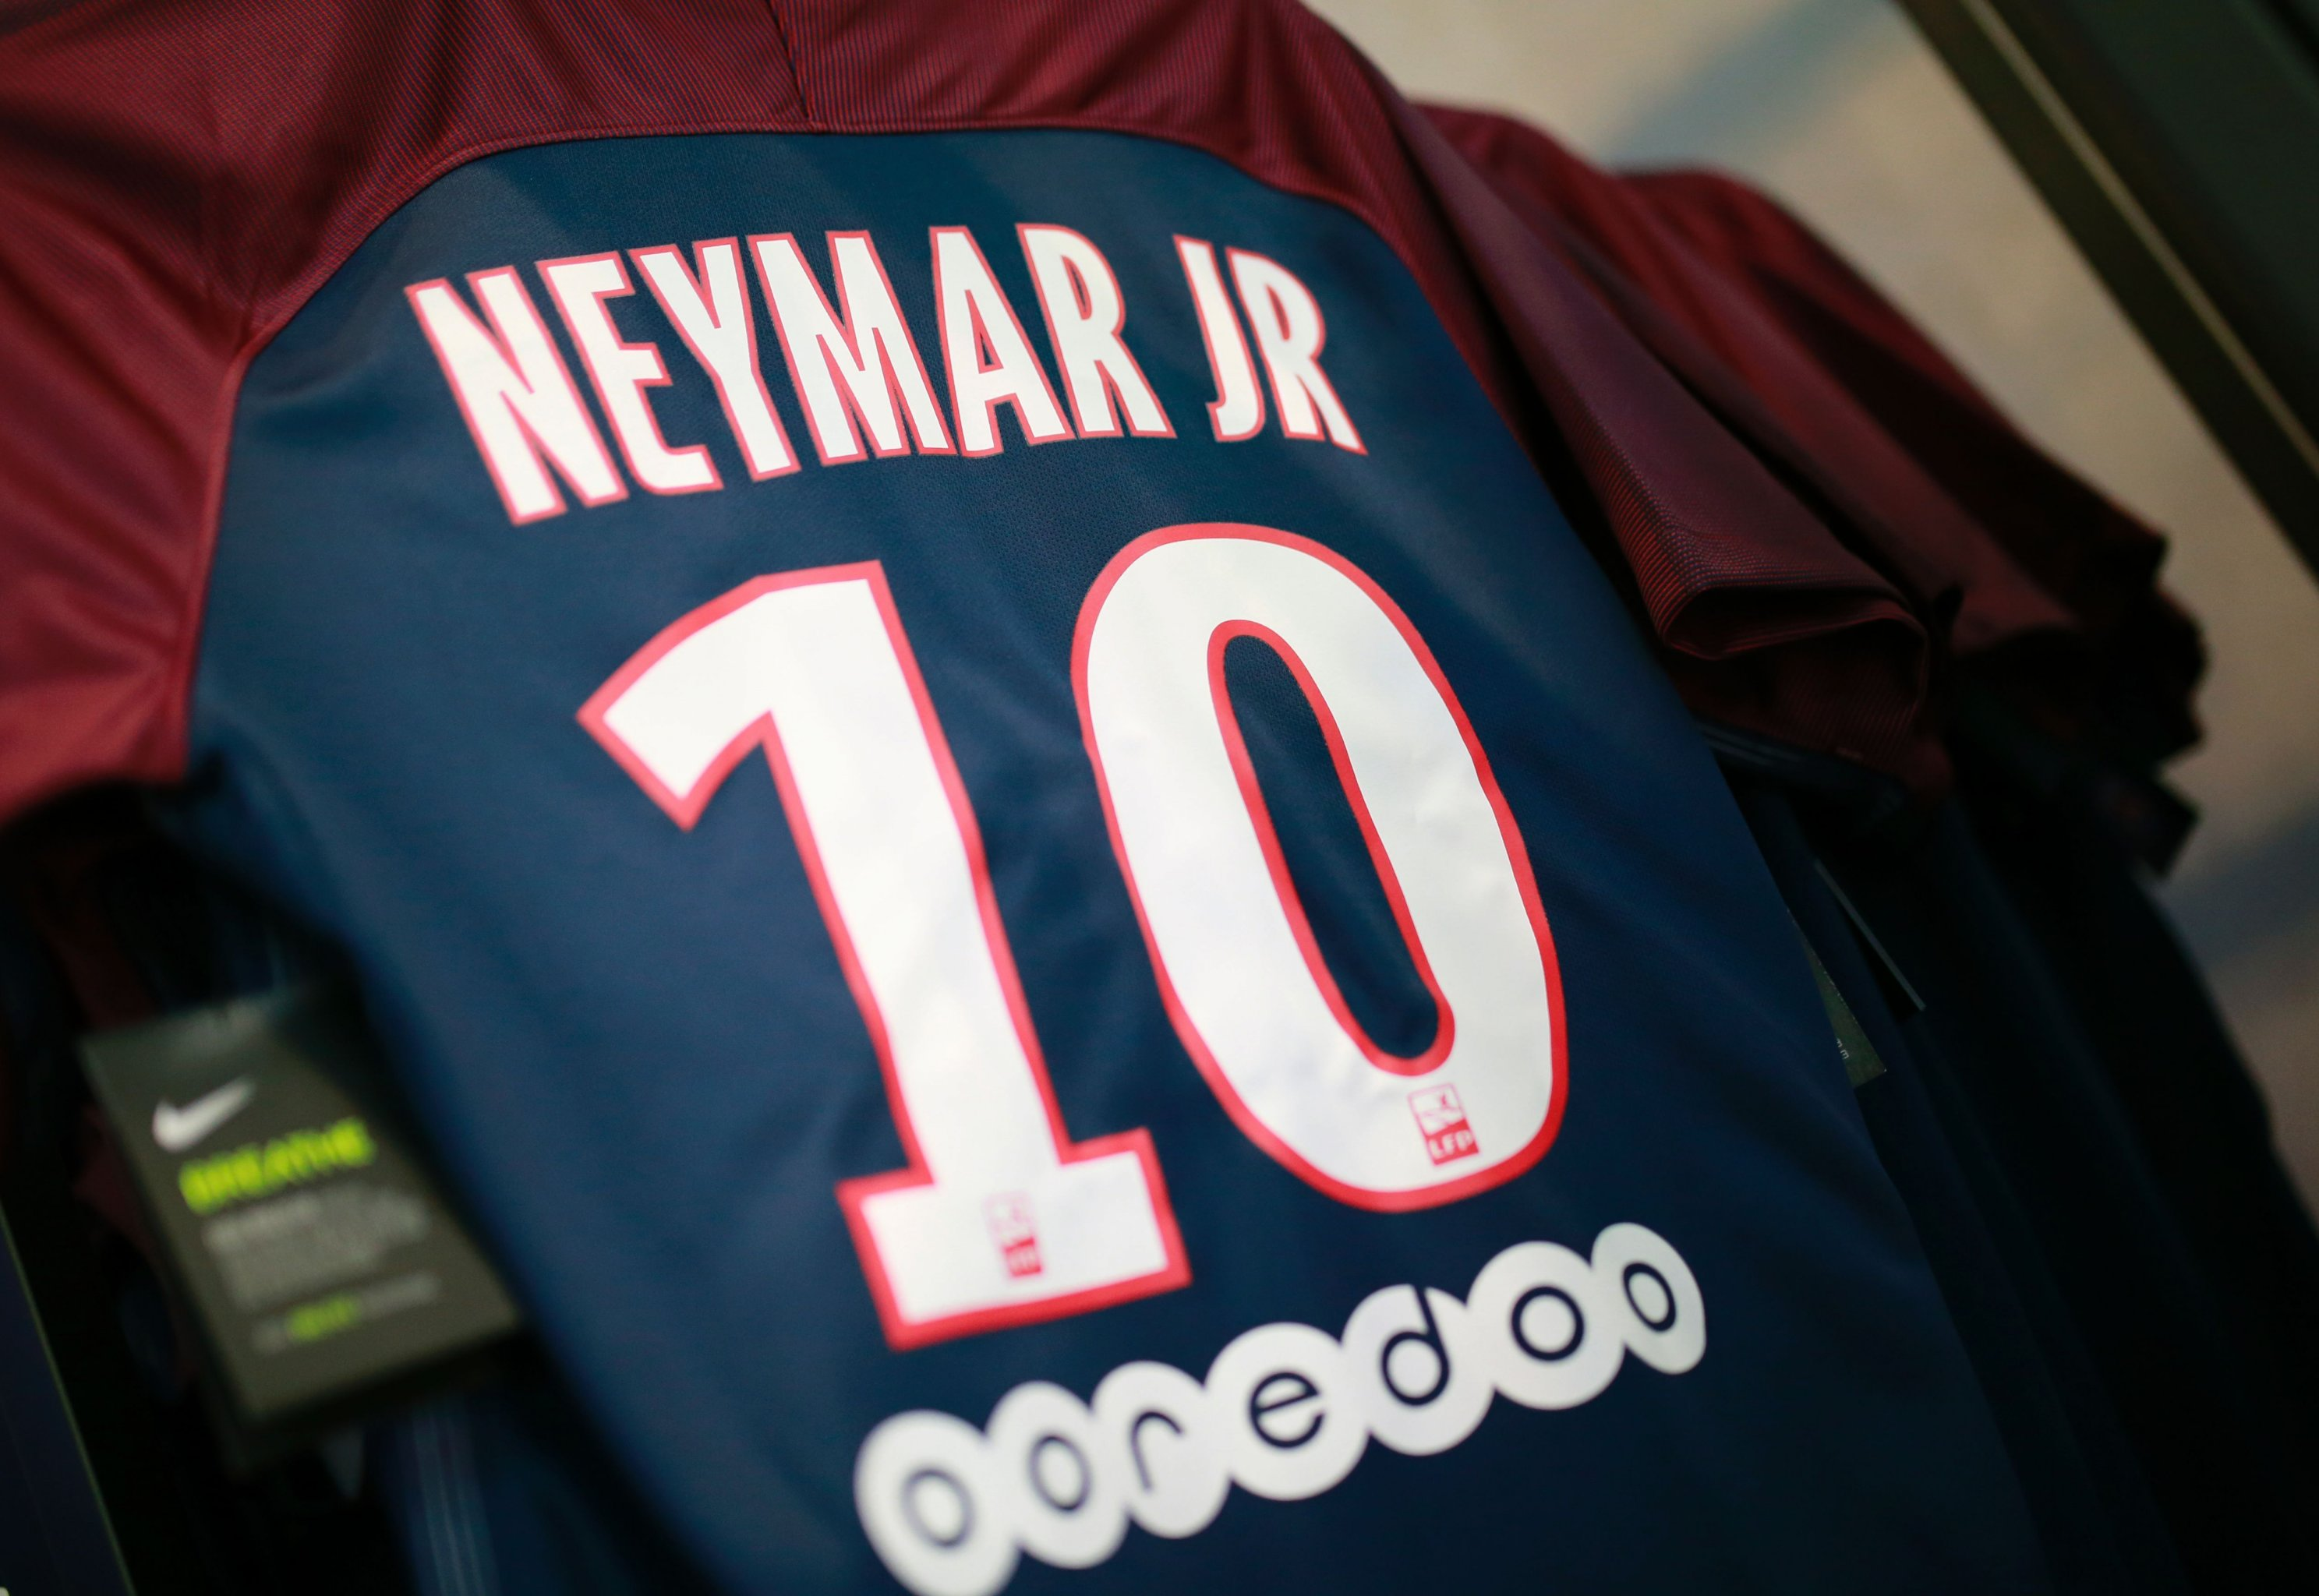 new concept c6ad5 94fd0 Neymar Shirts Stolen by Burglars Who Broke into PSG Manager ...